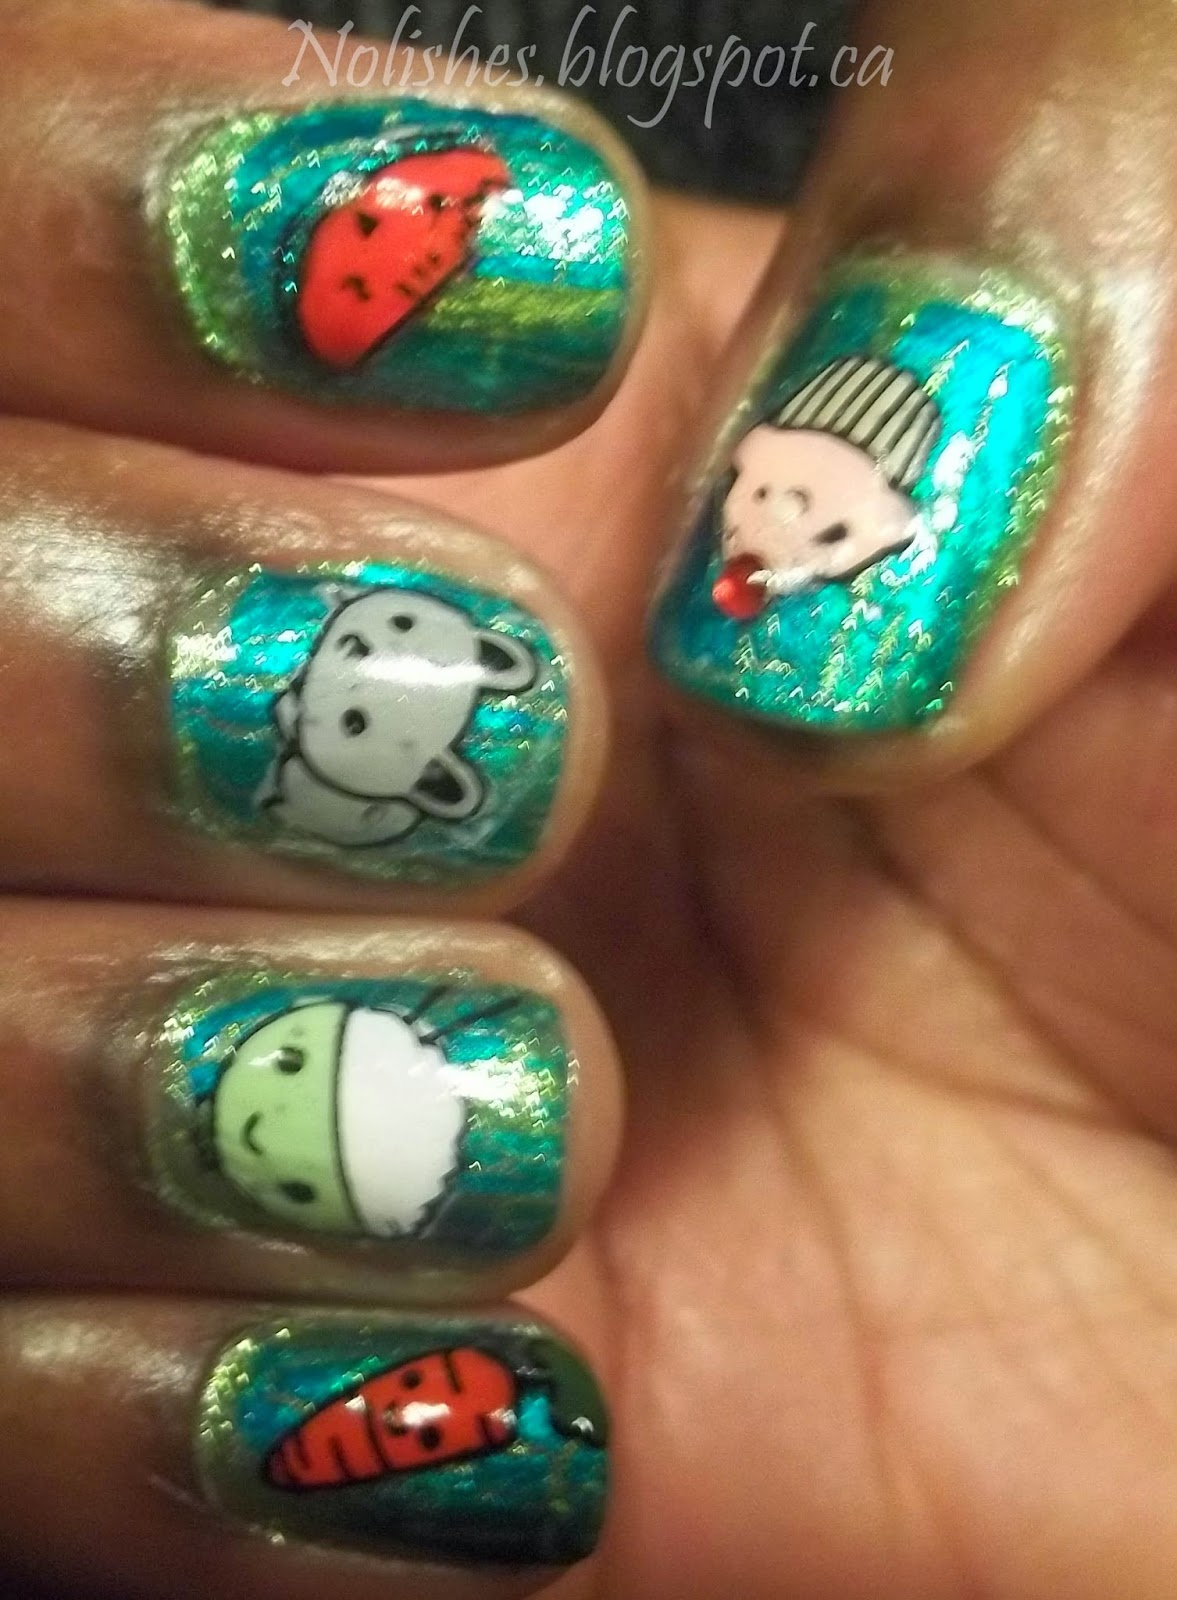 Nail stamping manicure with crackle polish base (teal crackle with chartreuse peeking through), and each finger has a different cartoon decal in a large variety of colours.